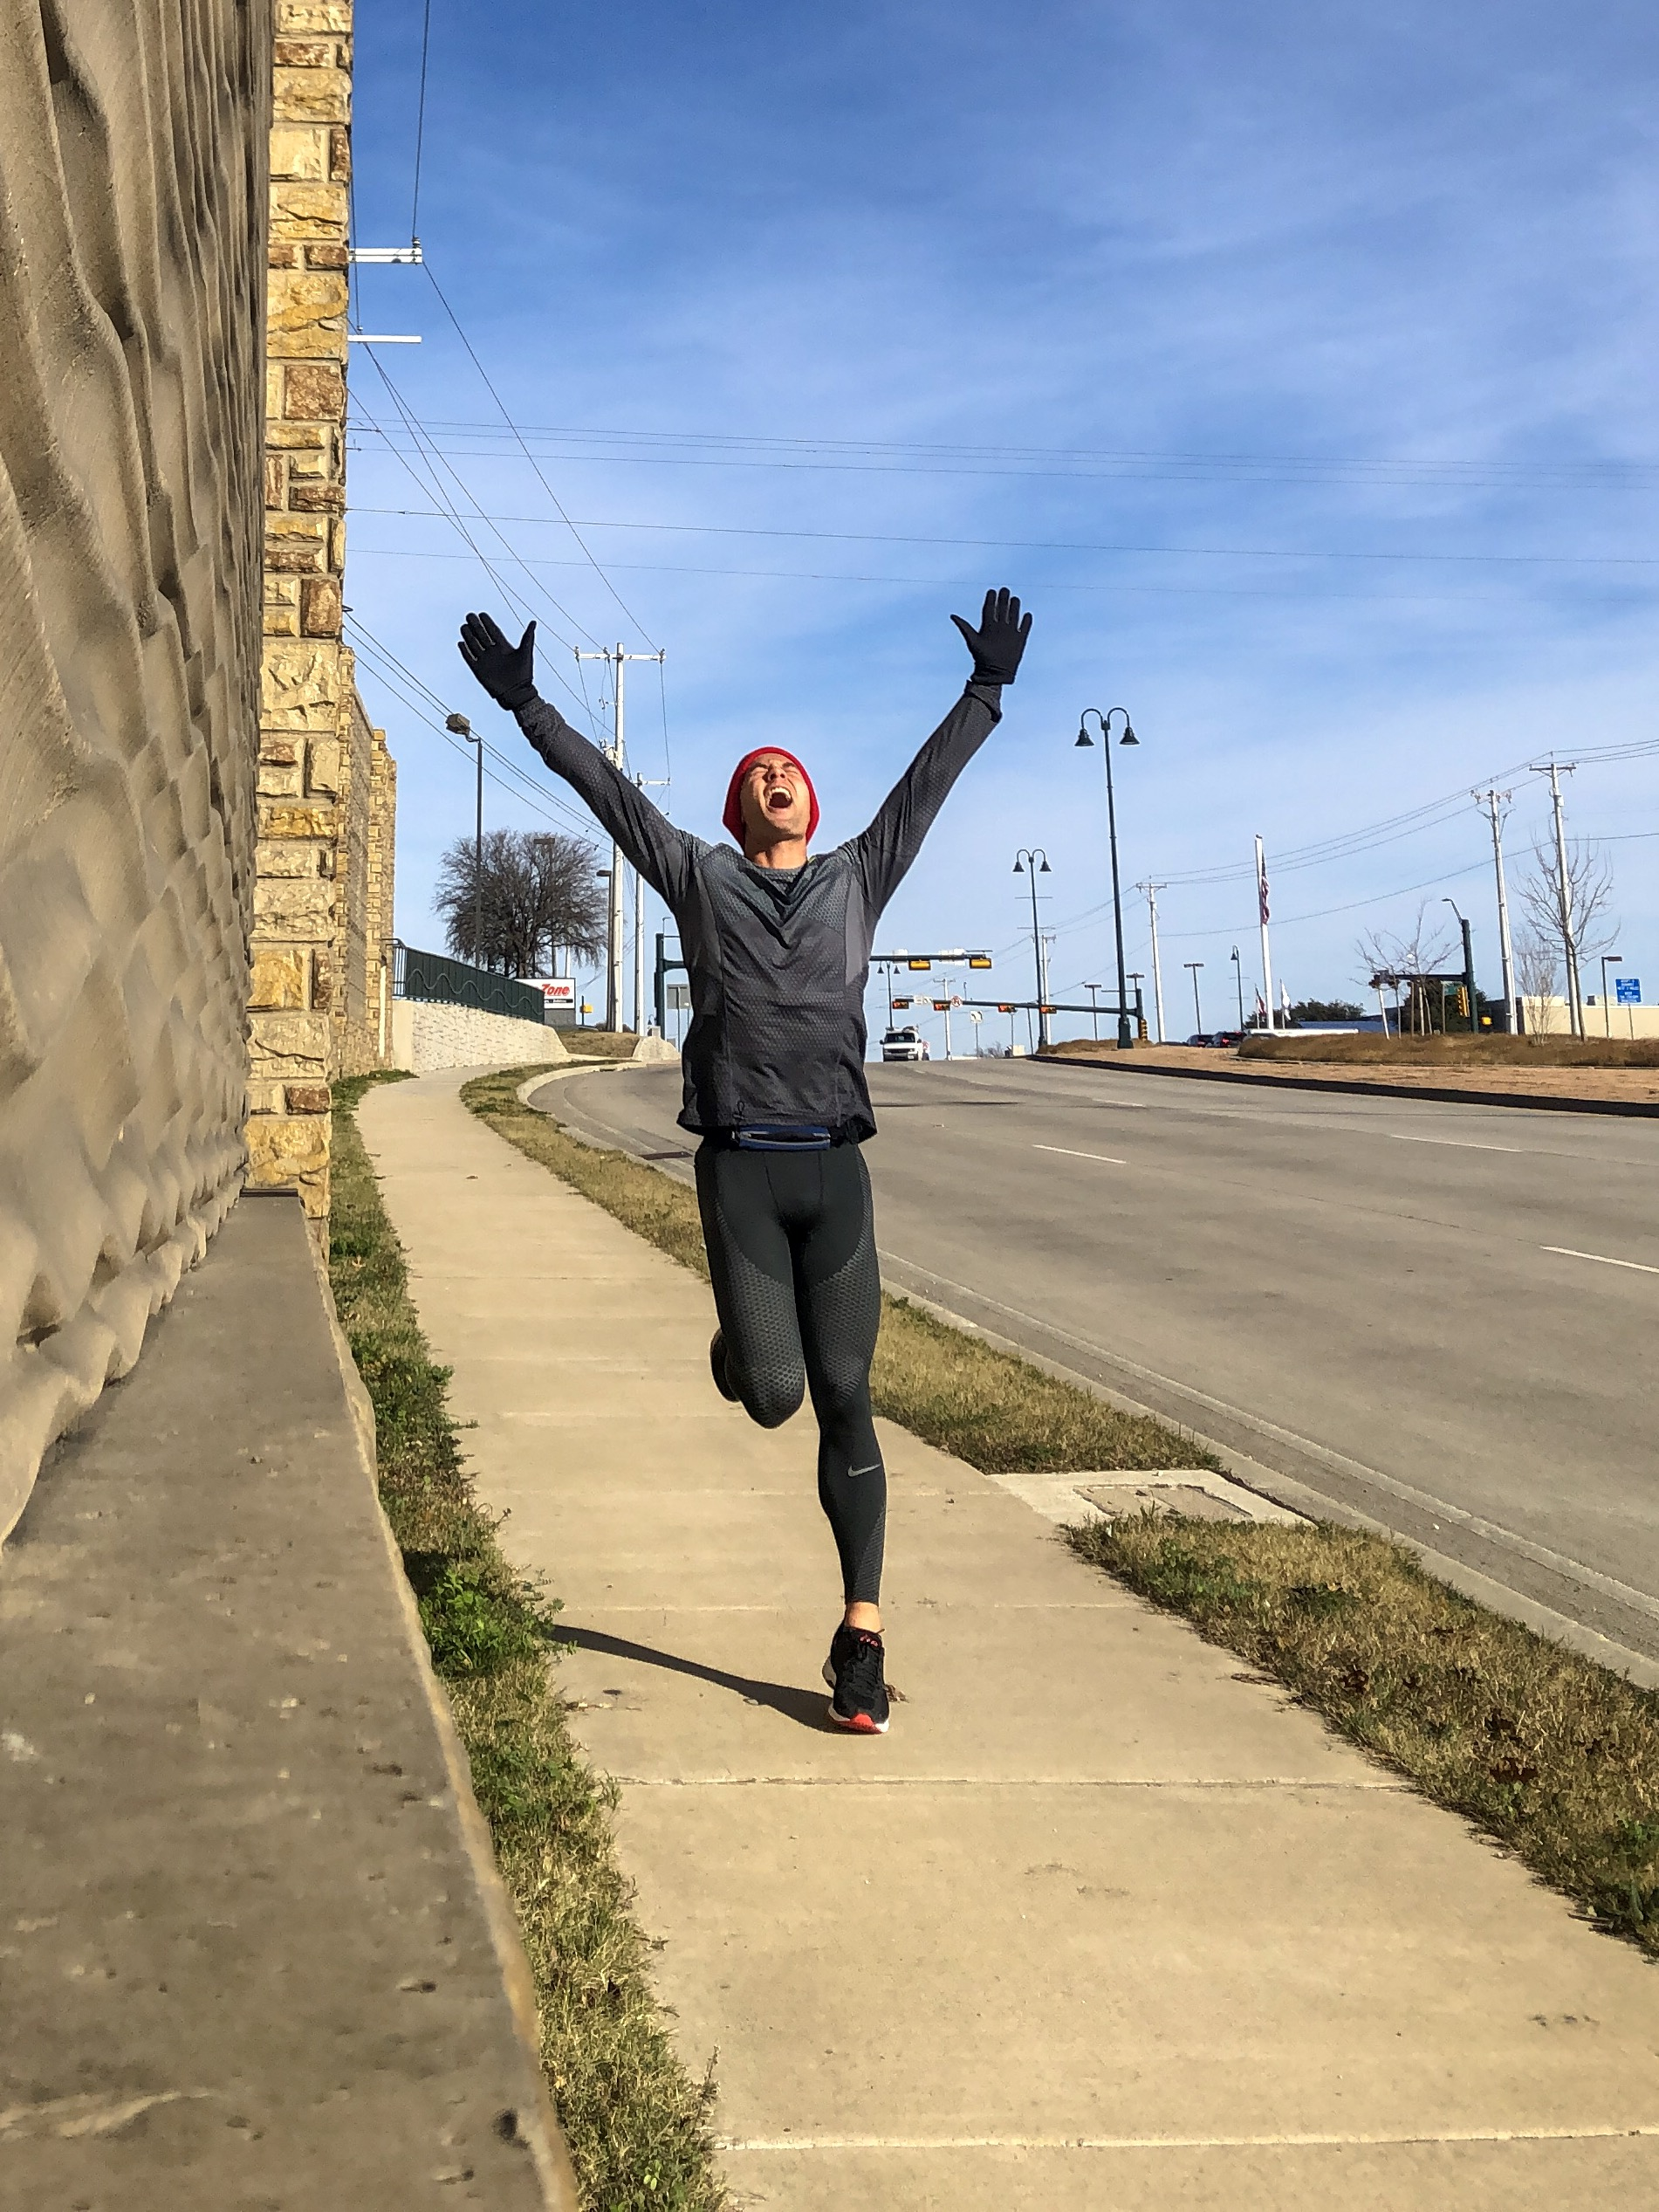 Celebrating life with a 10 mile Sunday Funday run in The Colony, TX